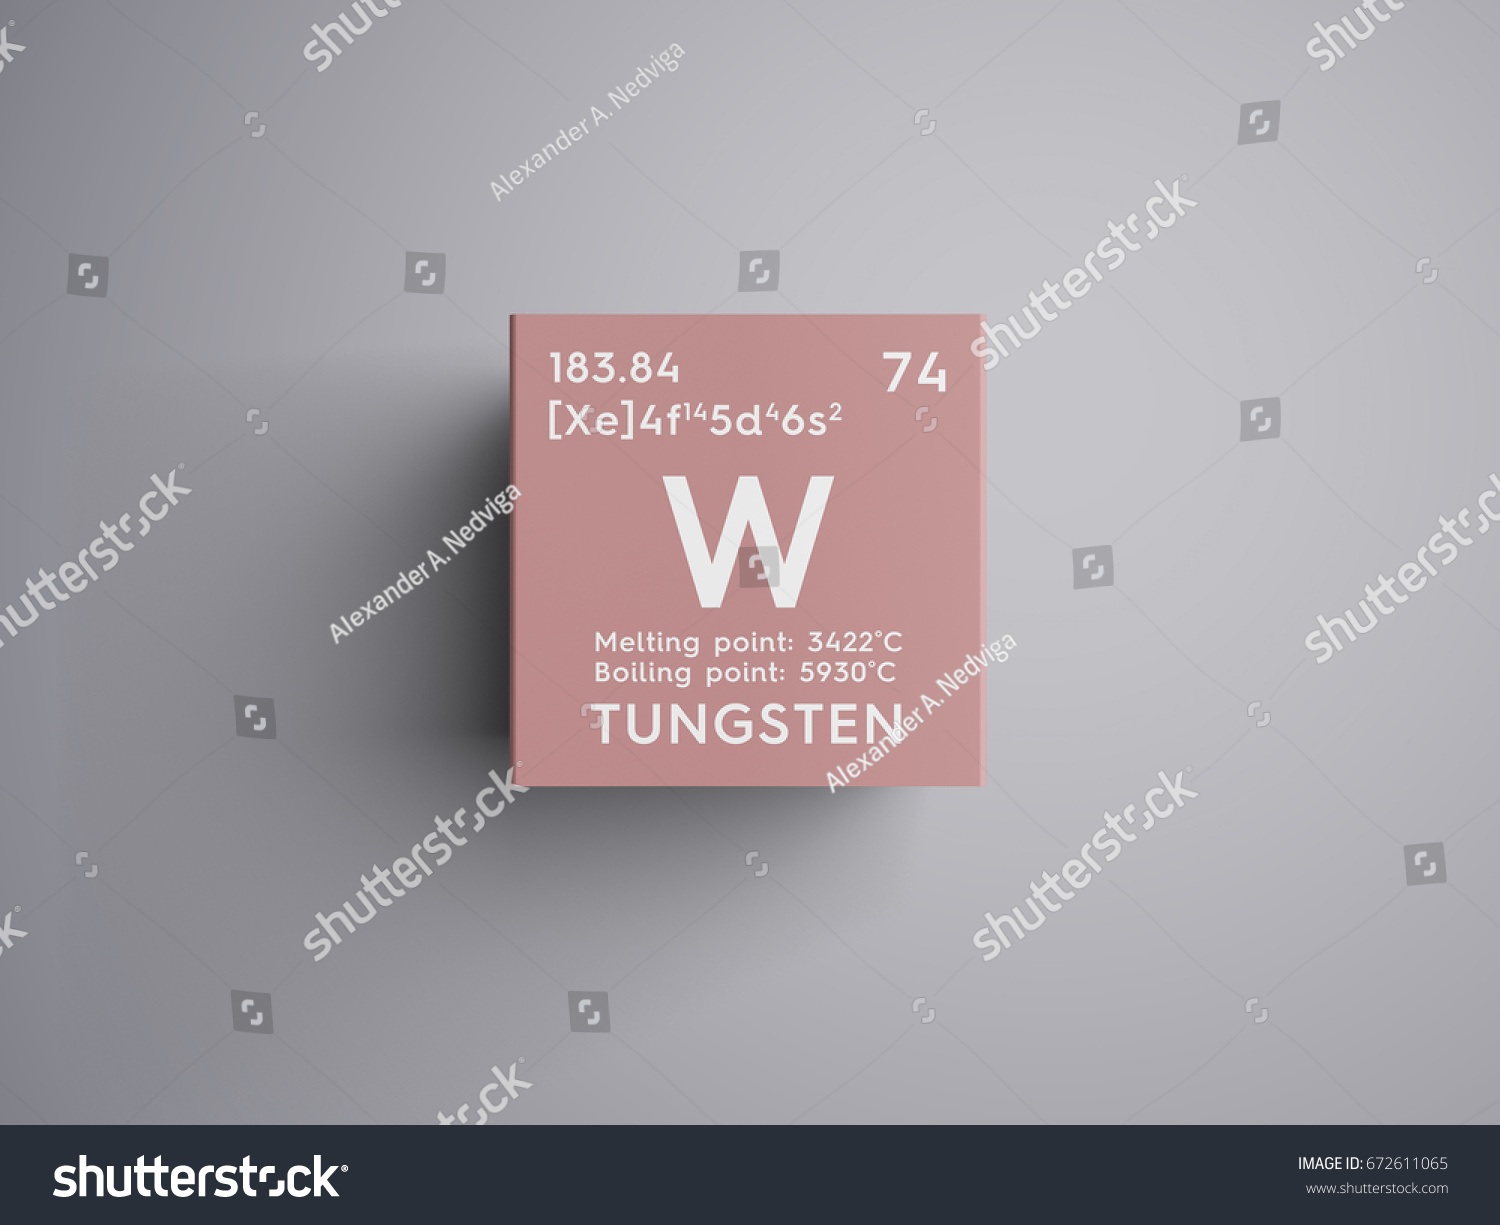 Periodic table of elements tungsten gallery periodic table images symbol for tungsten on periodic table image collections periodic tungsten in periodic table gallery periodic table gamestrikefo Choice Image